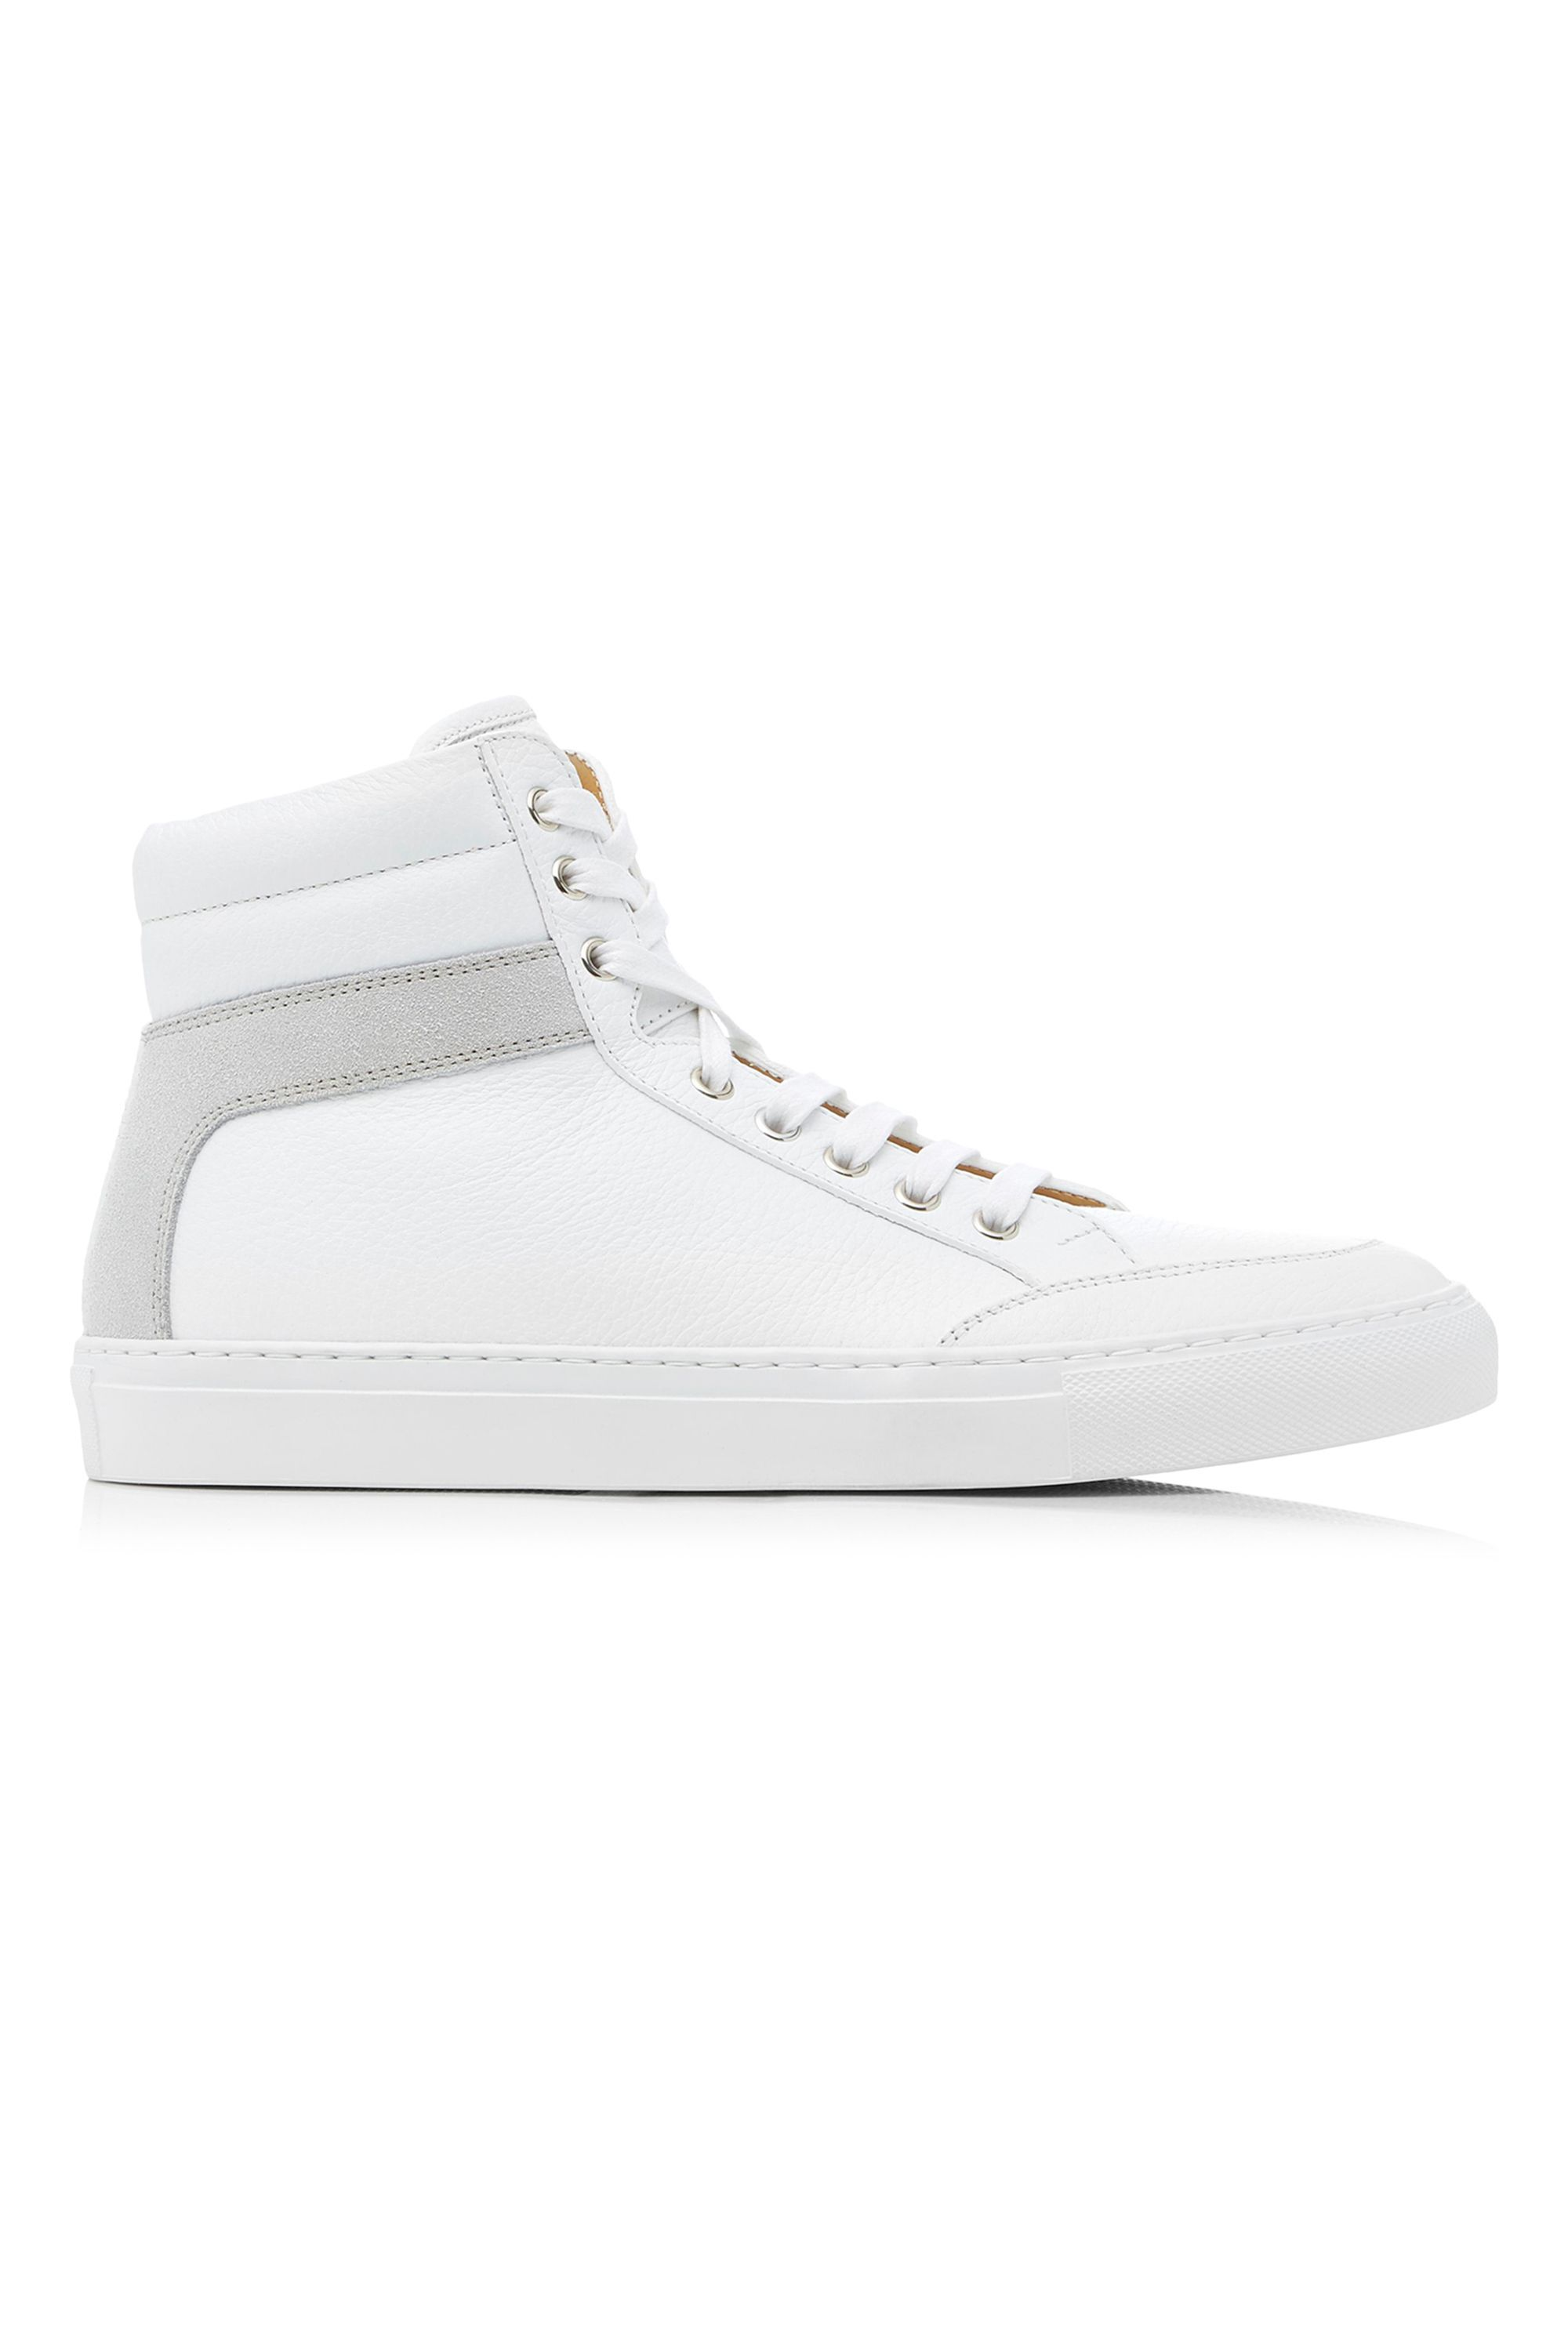 b3330d277fd293 15 Best White Sneakers for 2019 - Classic White Shoes That Go With  Everything